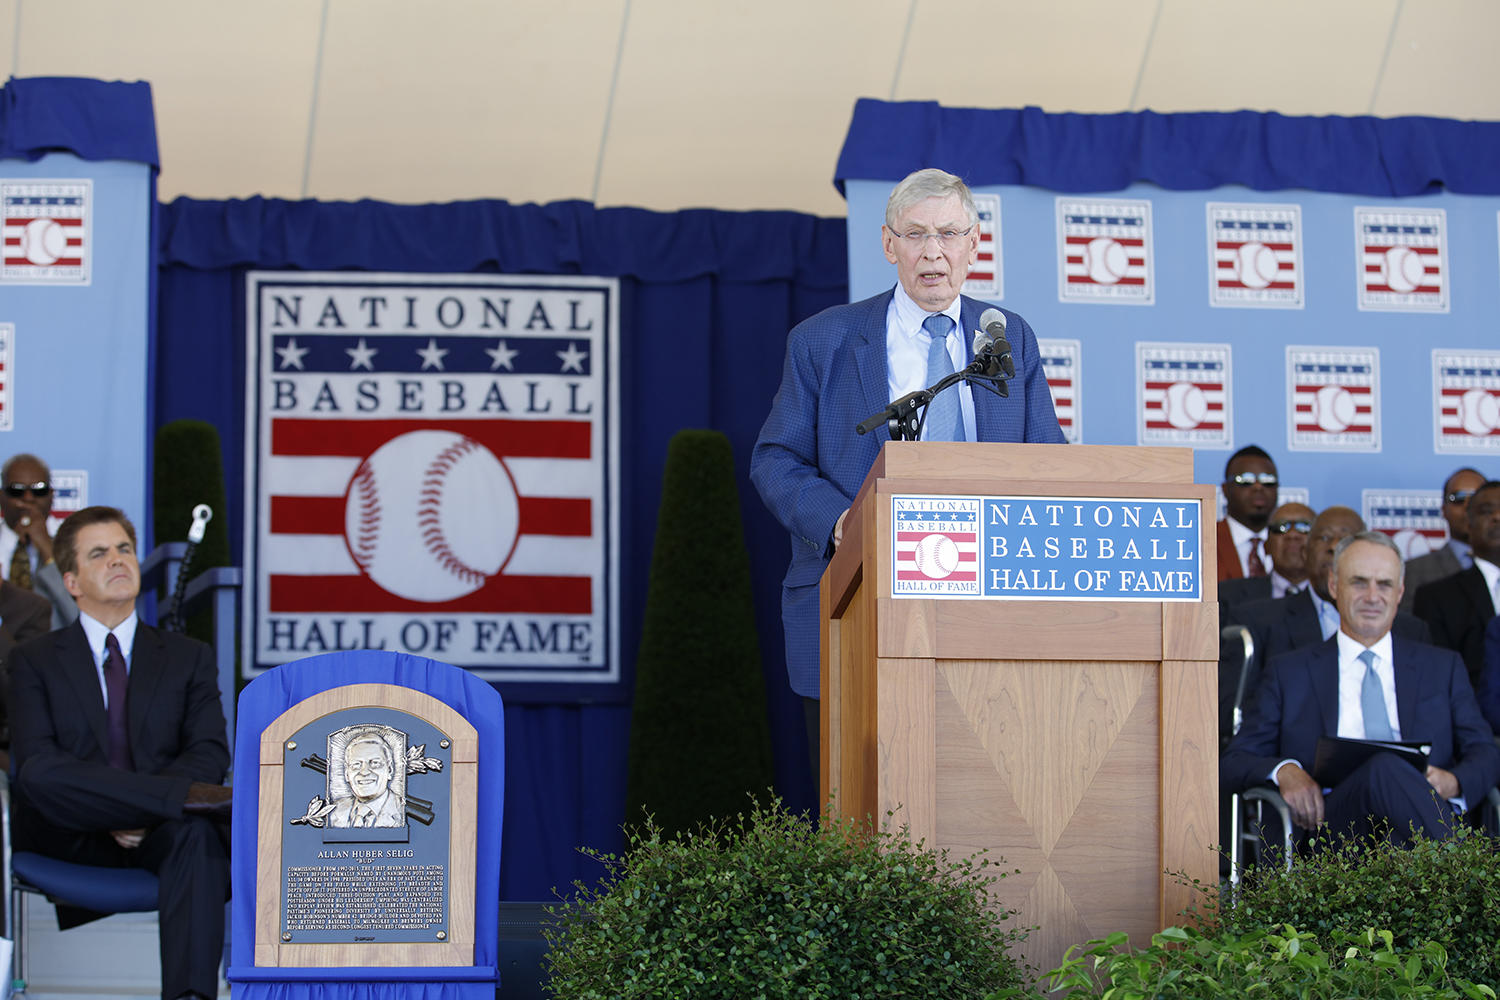 Bud Selig became the first living Hall of Famer to be inducted on his birthday on Sunday. Selig turned 83 years old. (Milo Stewart Jr. / National Baseball Hall of Fame and Museum)